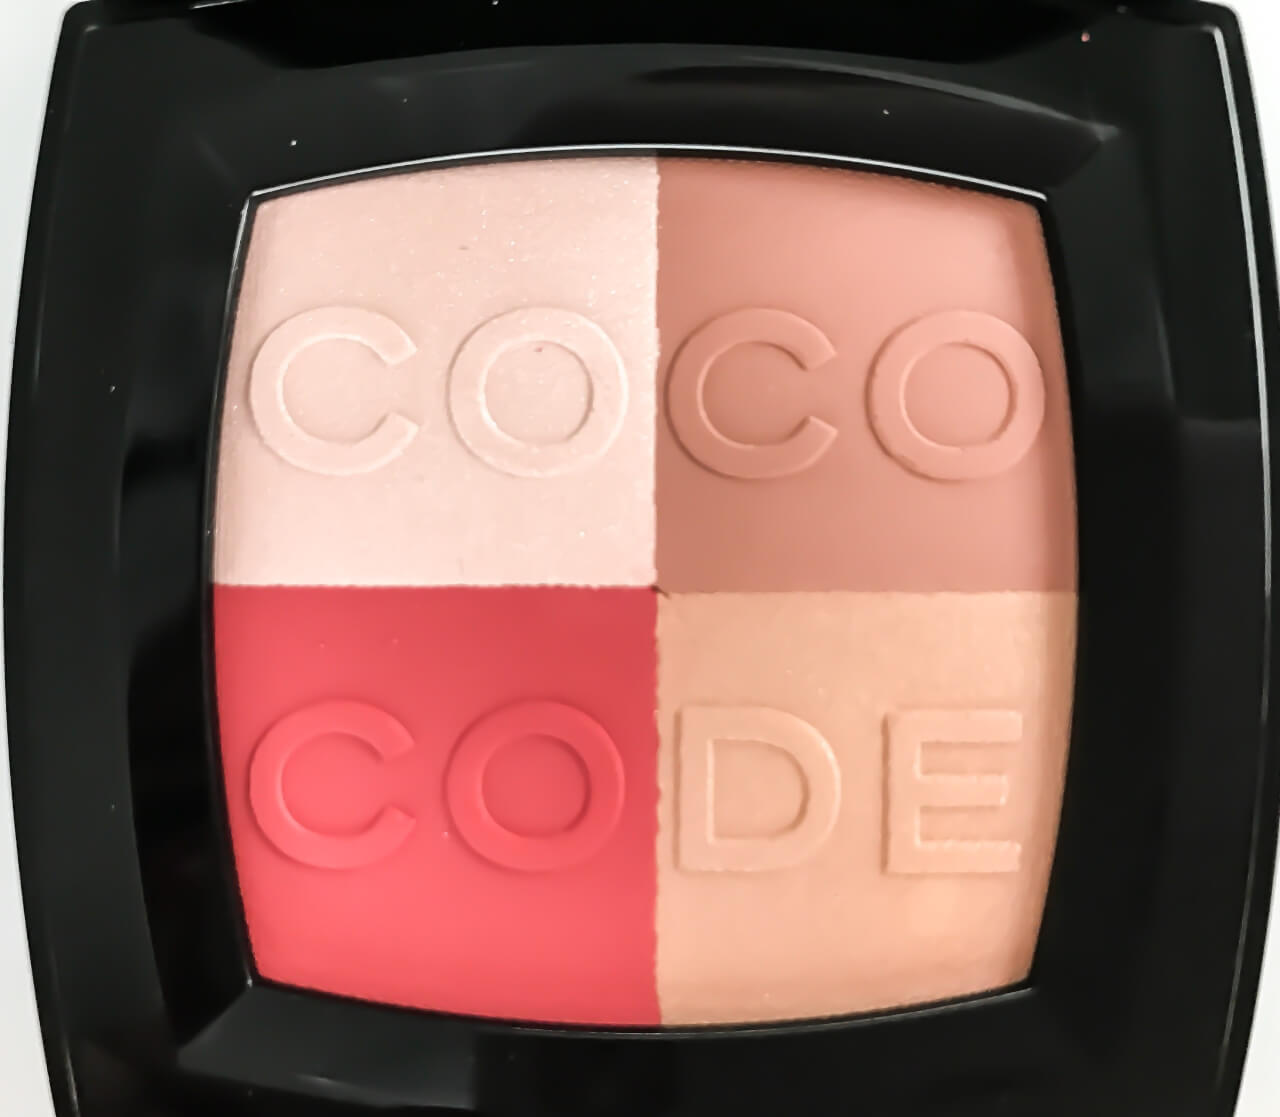 Chanel COCO CODES COLLECTION harmonia róży